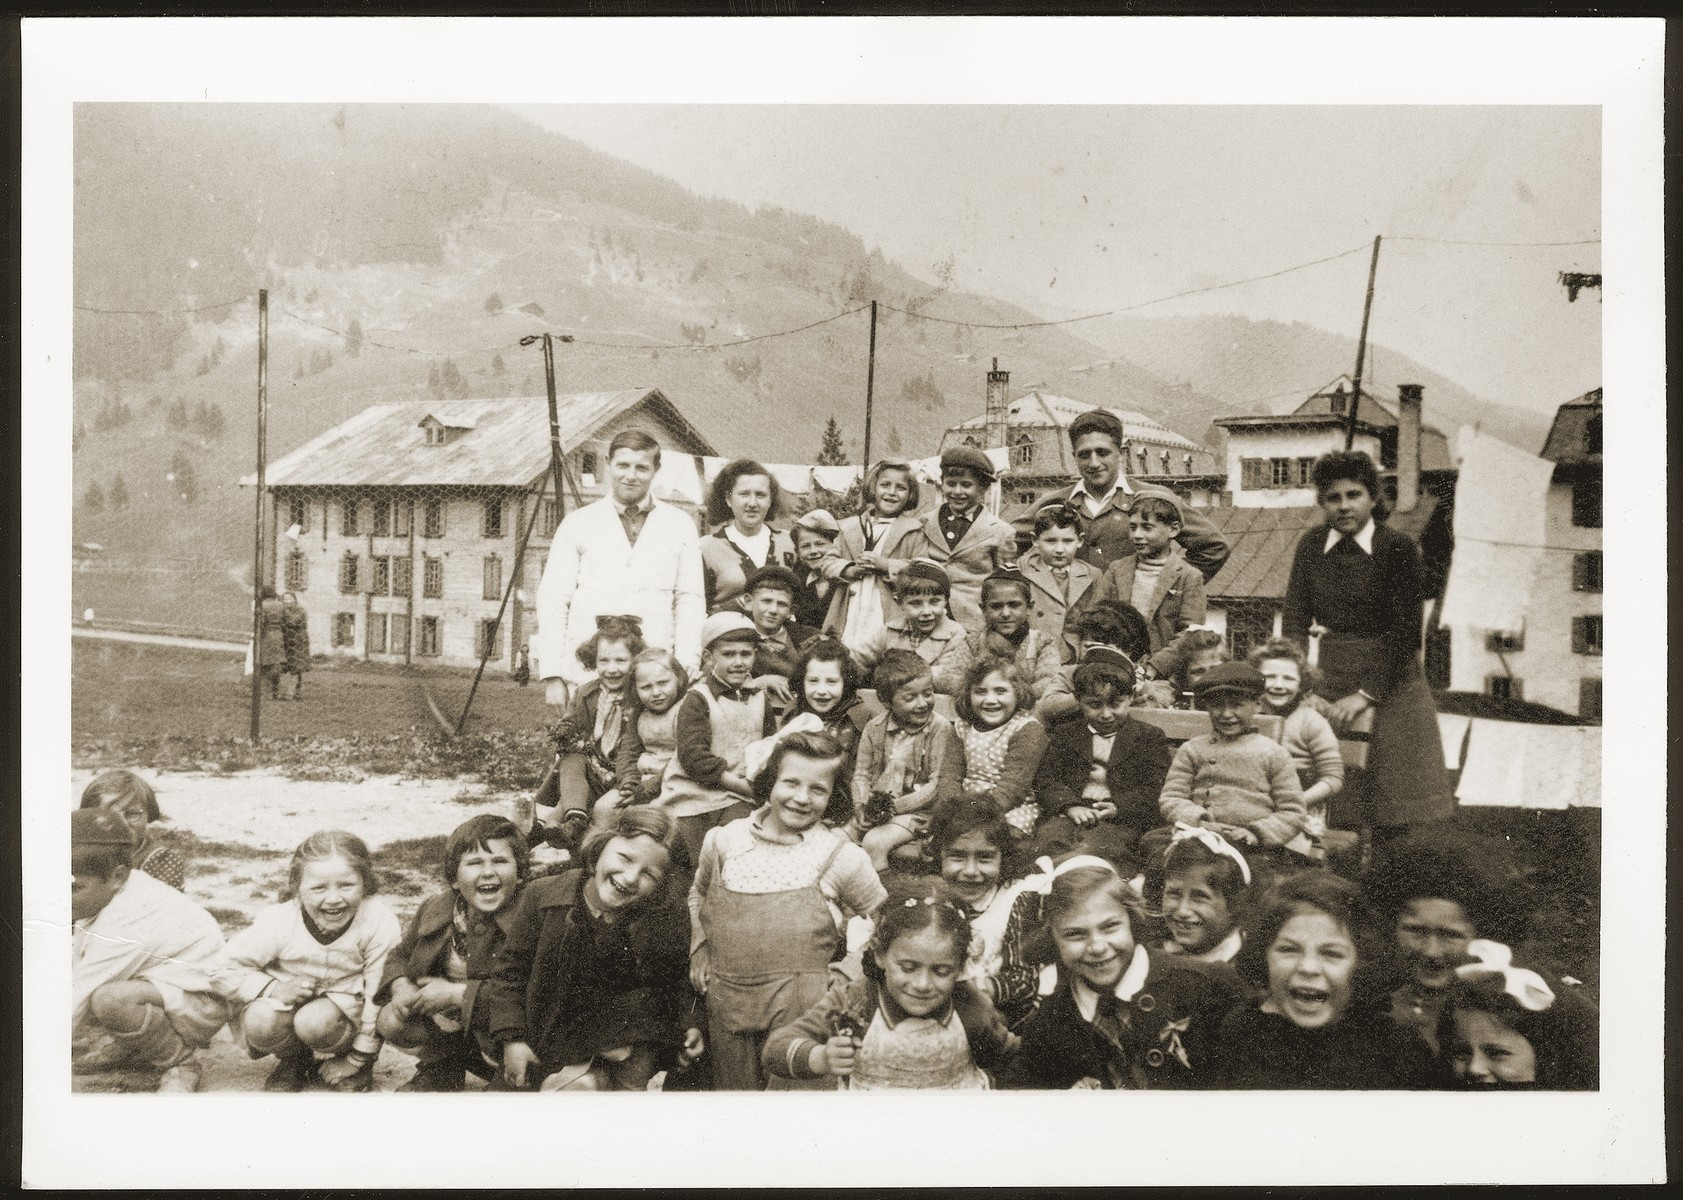 Children in the in the Morgins refugee camp school pose with their teacher by a fence.  Frieda Johles is standing in the front center.